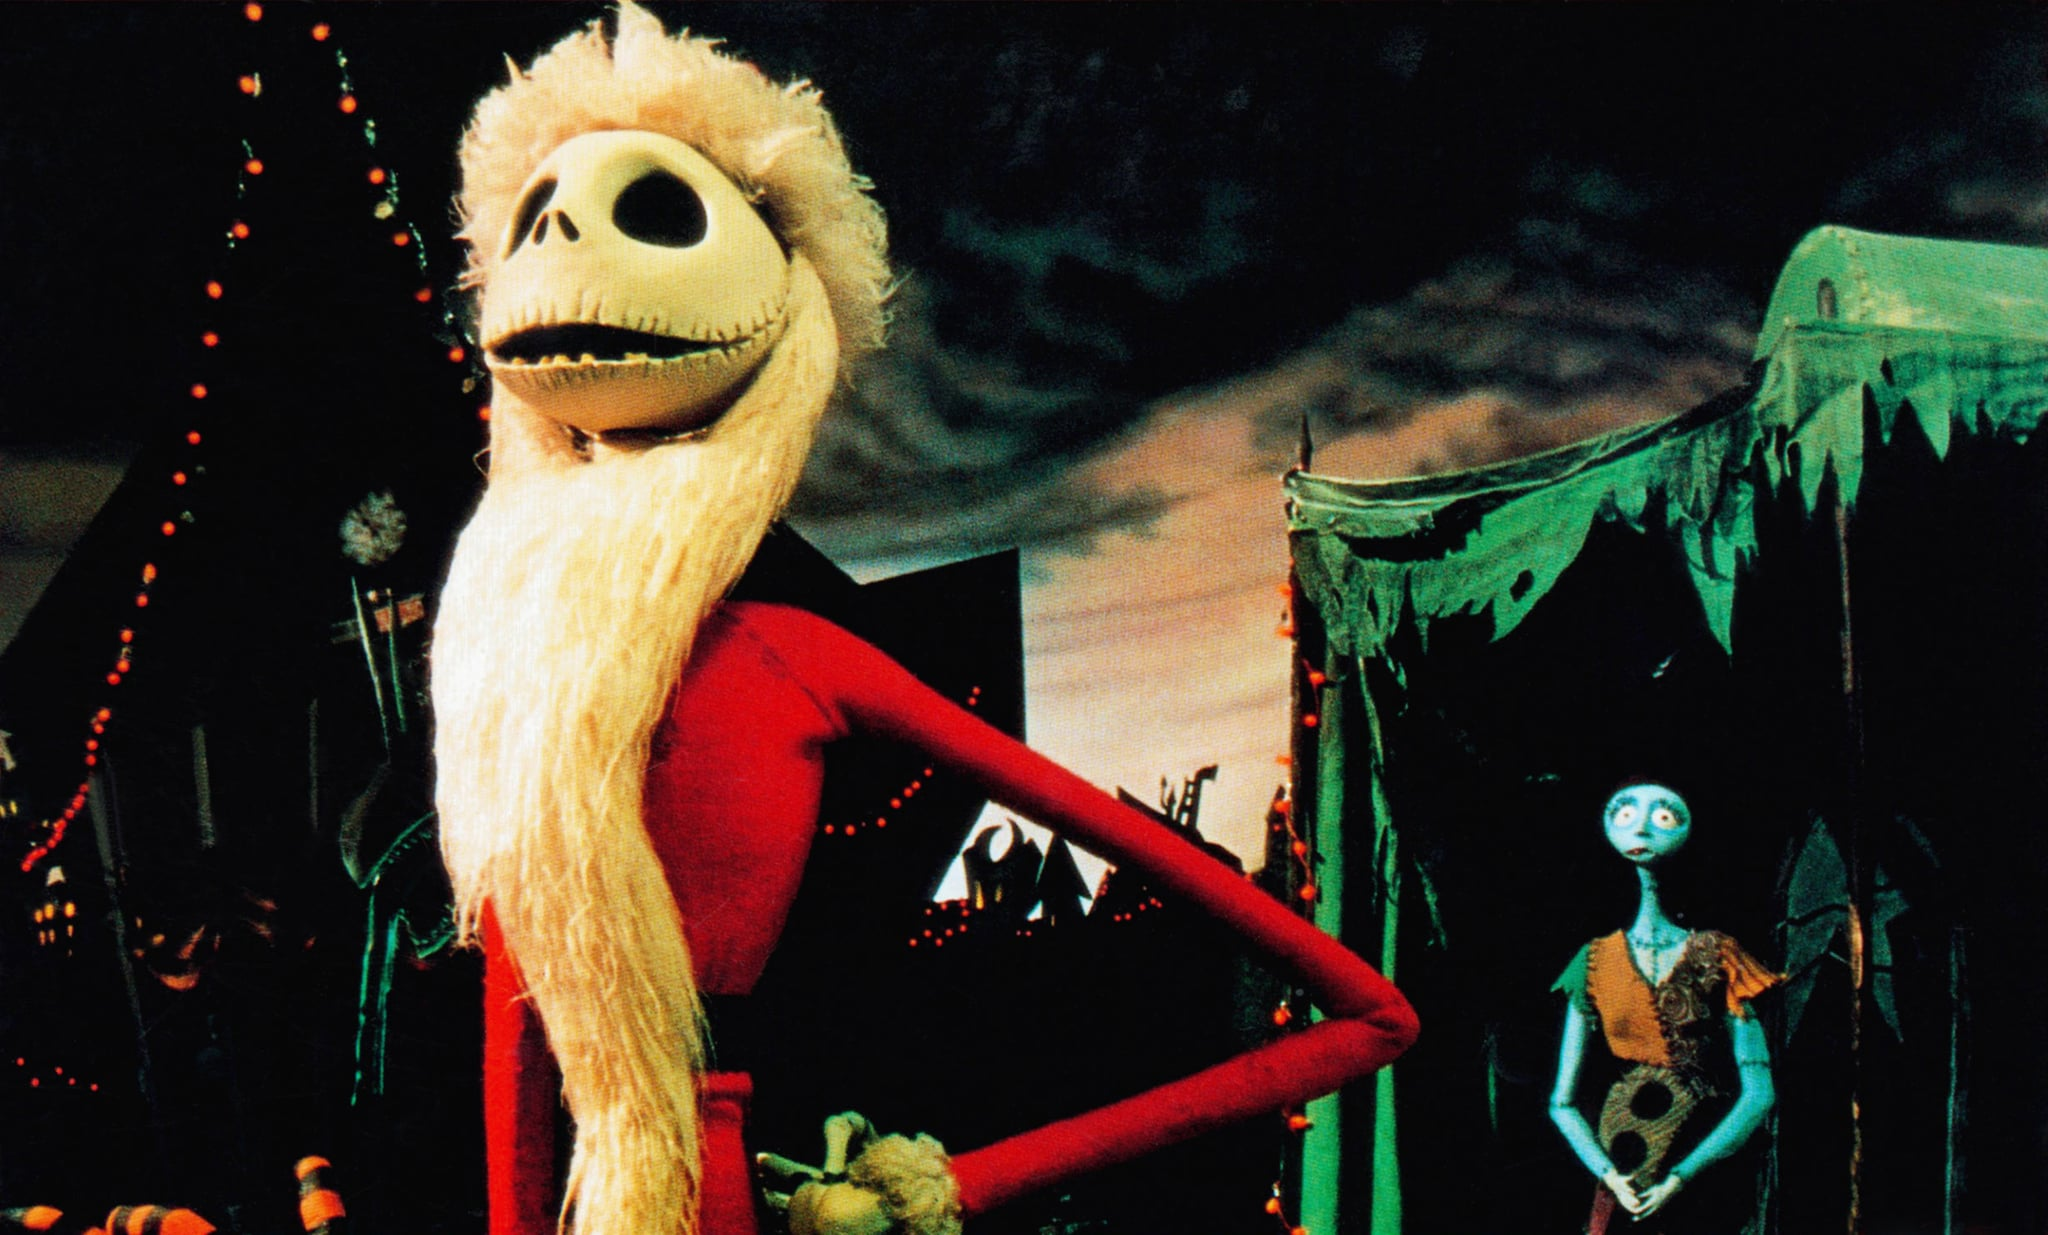 christmas-films-we're-watching-nightmare-before-christmas